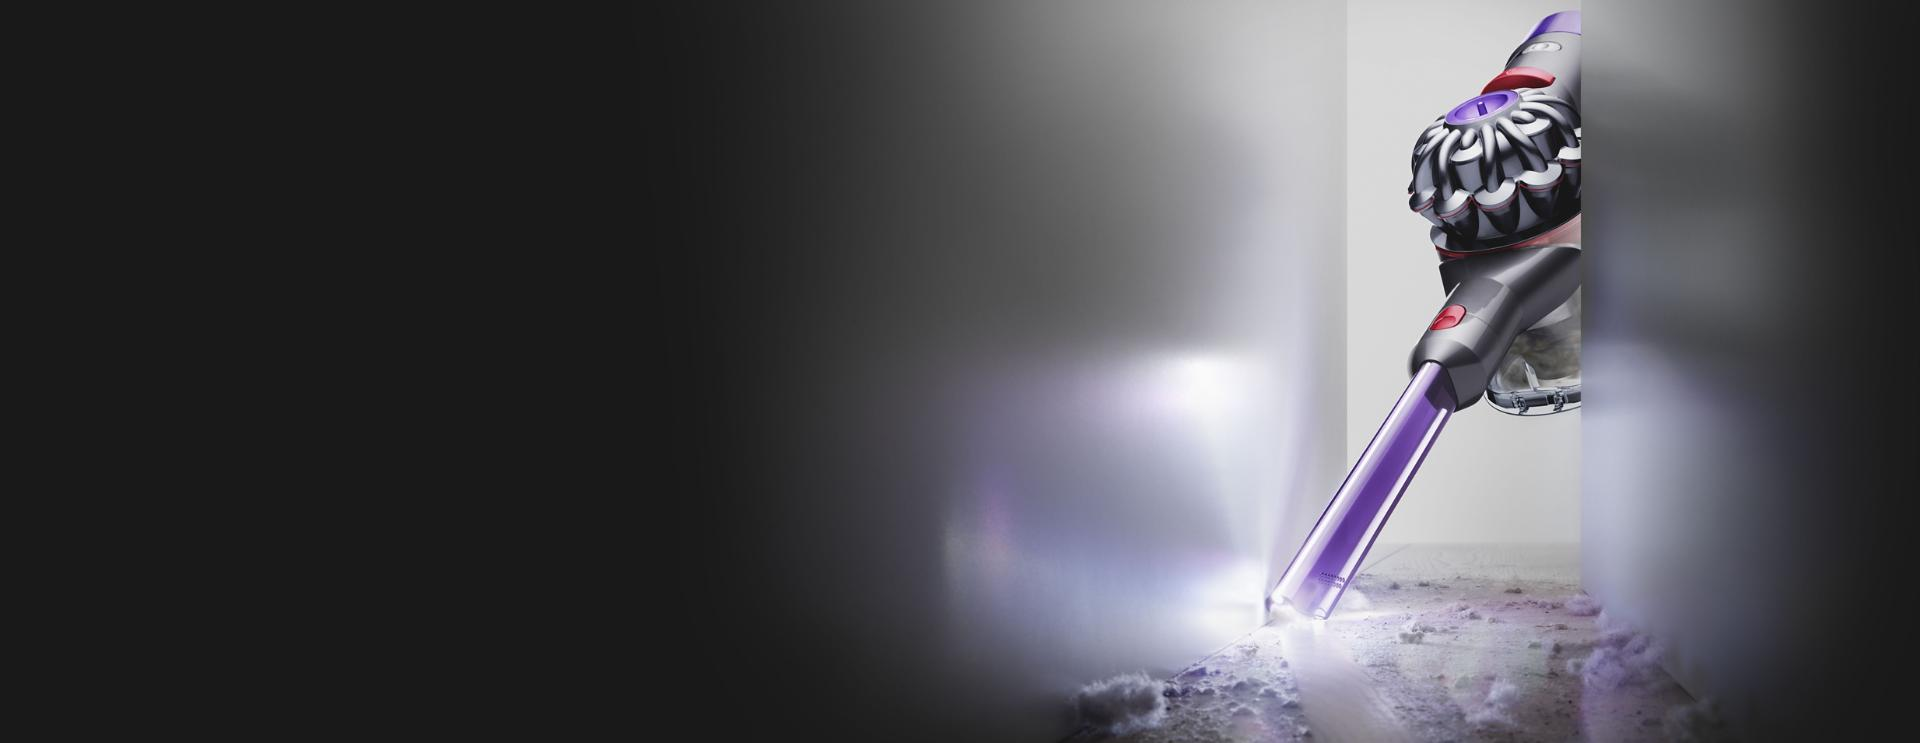 The Dyson V8 Slim Light-up crevice tool cleaning in a narrow gap